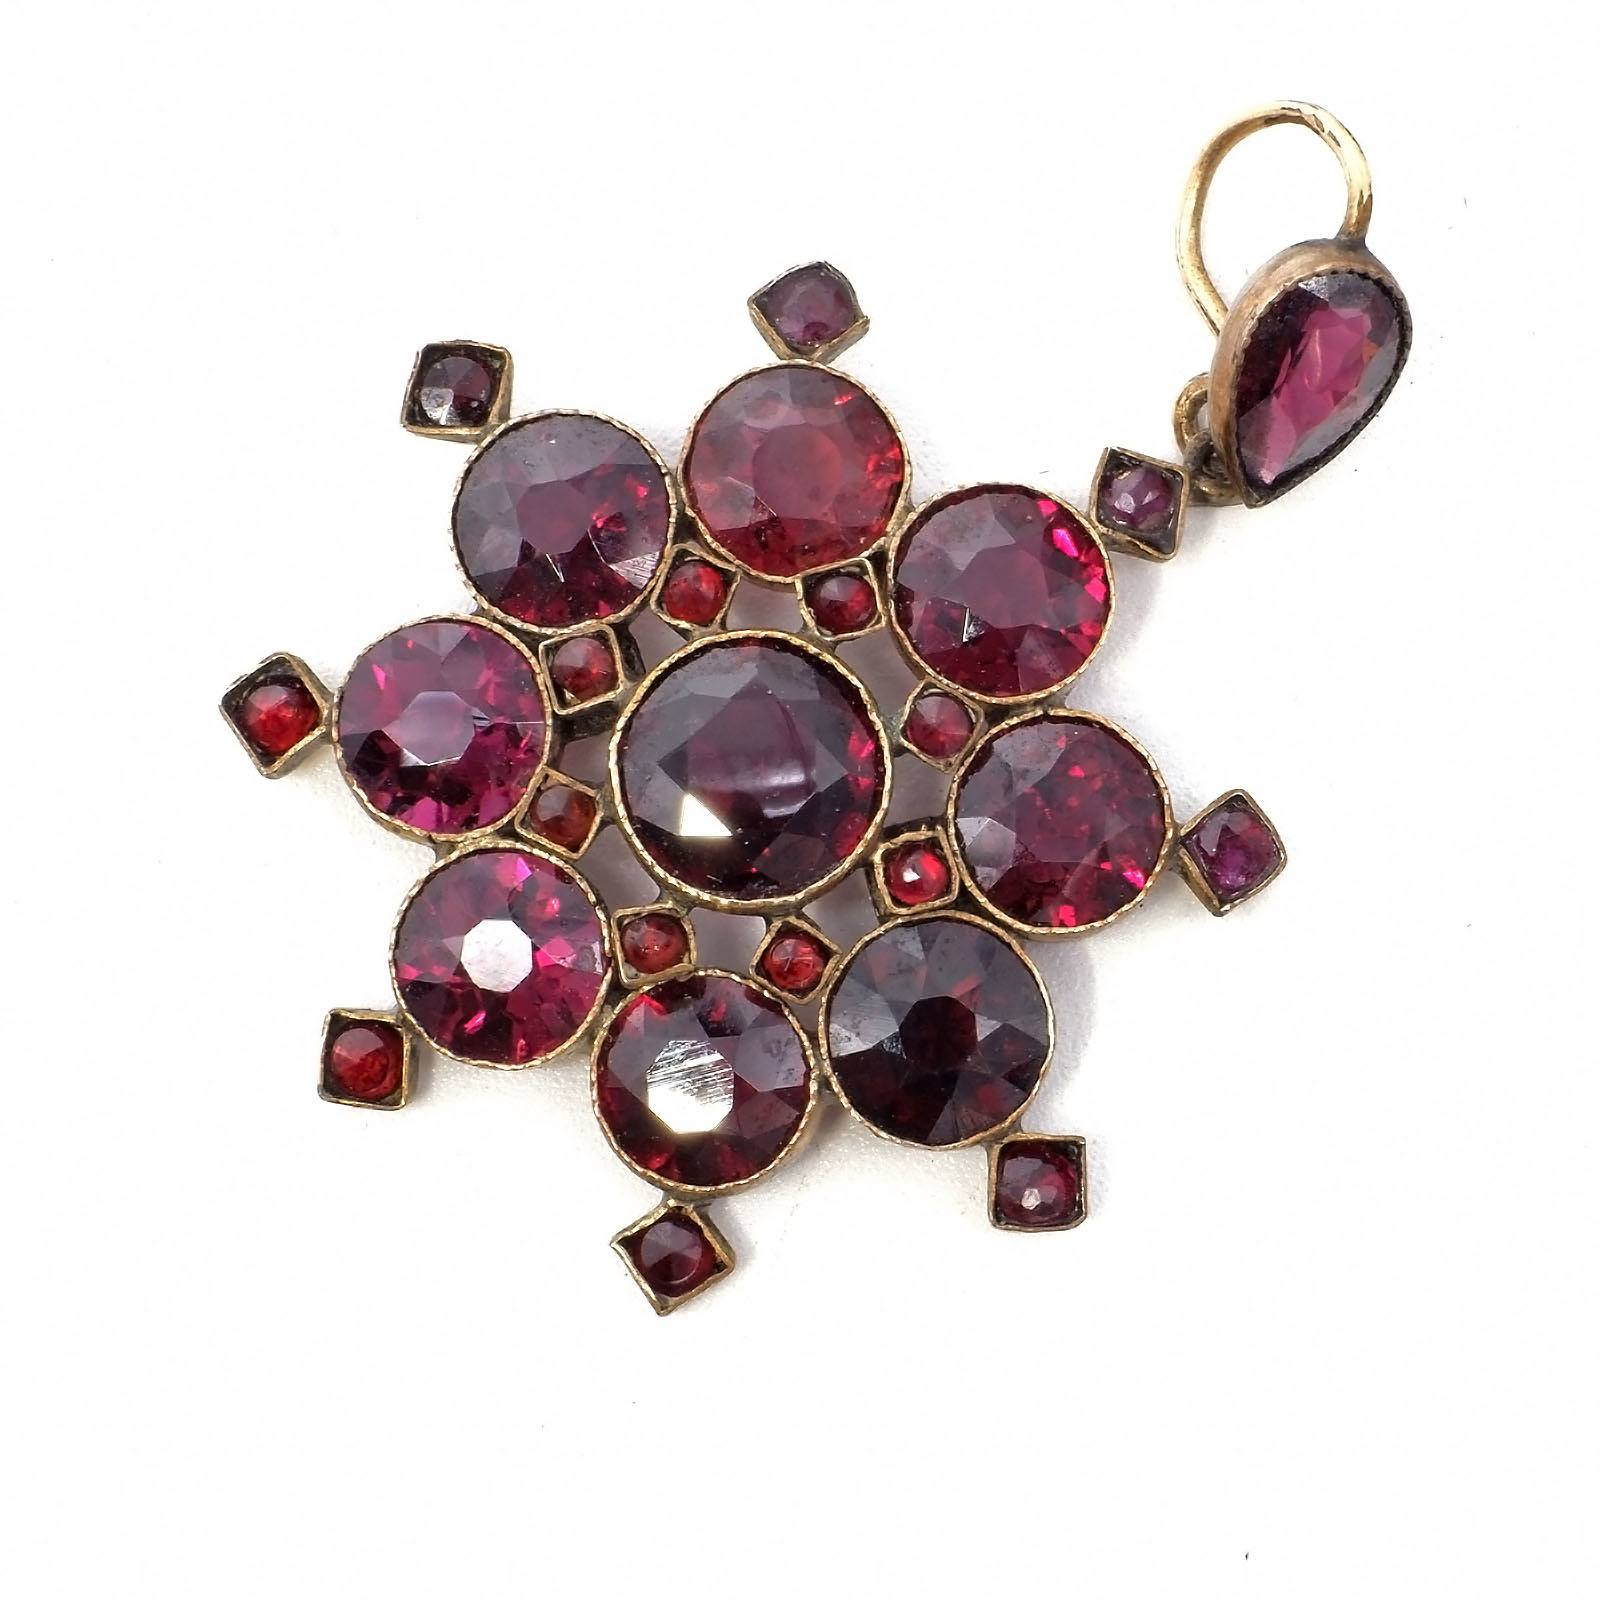 'Antique 9ct Yellow Gold Pendant with a Round Cluster of Red Facitted Garnet in Bezel Settings with Milgrain Edge, 4g'